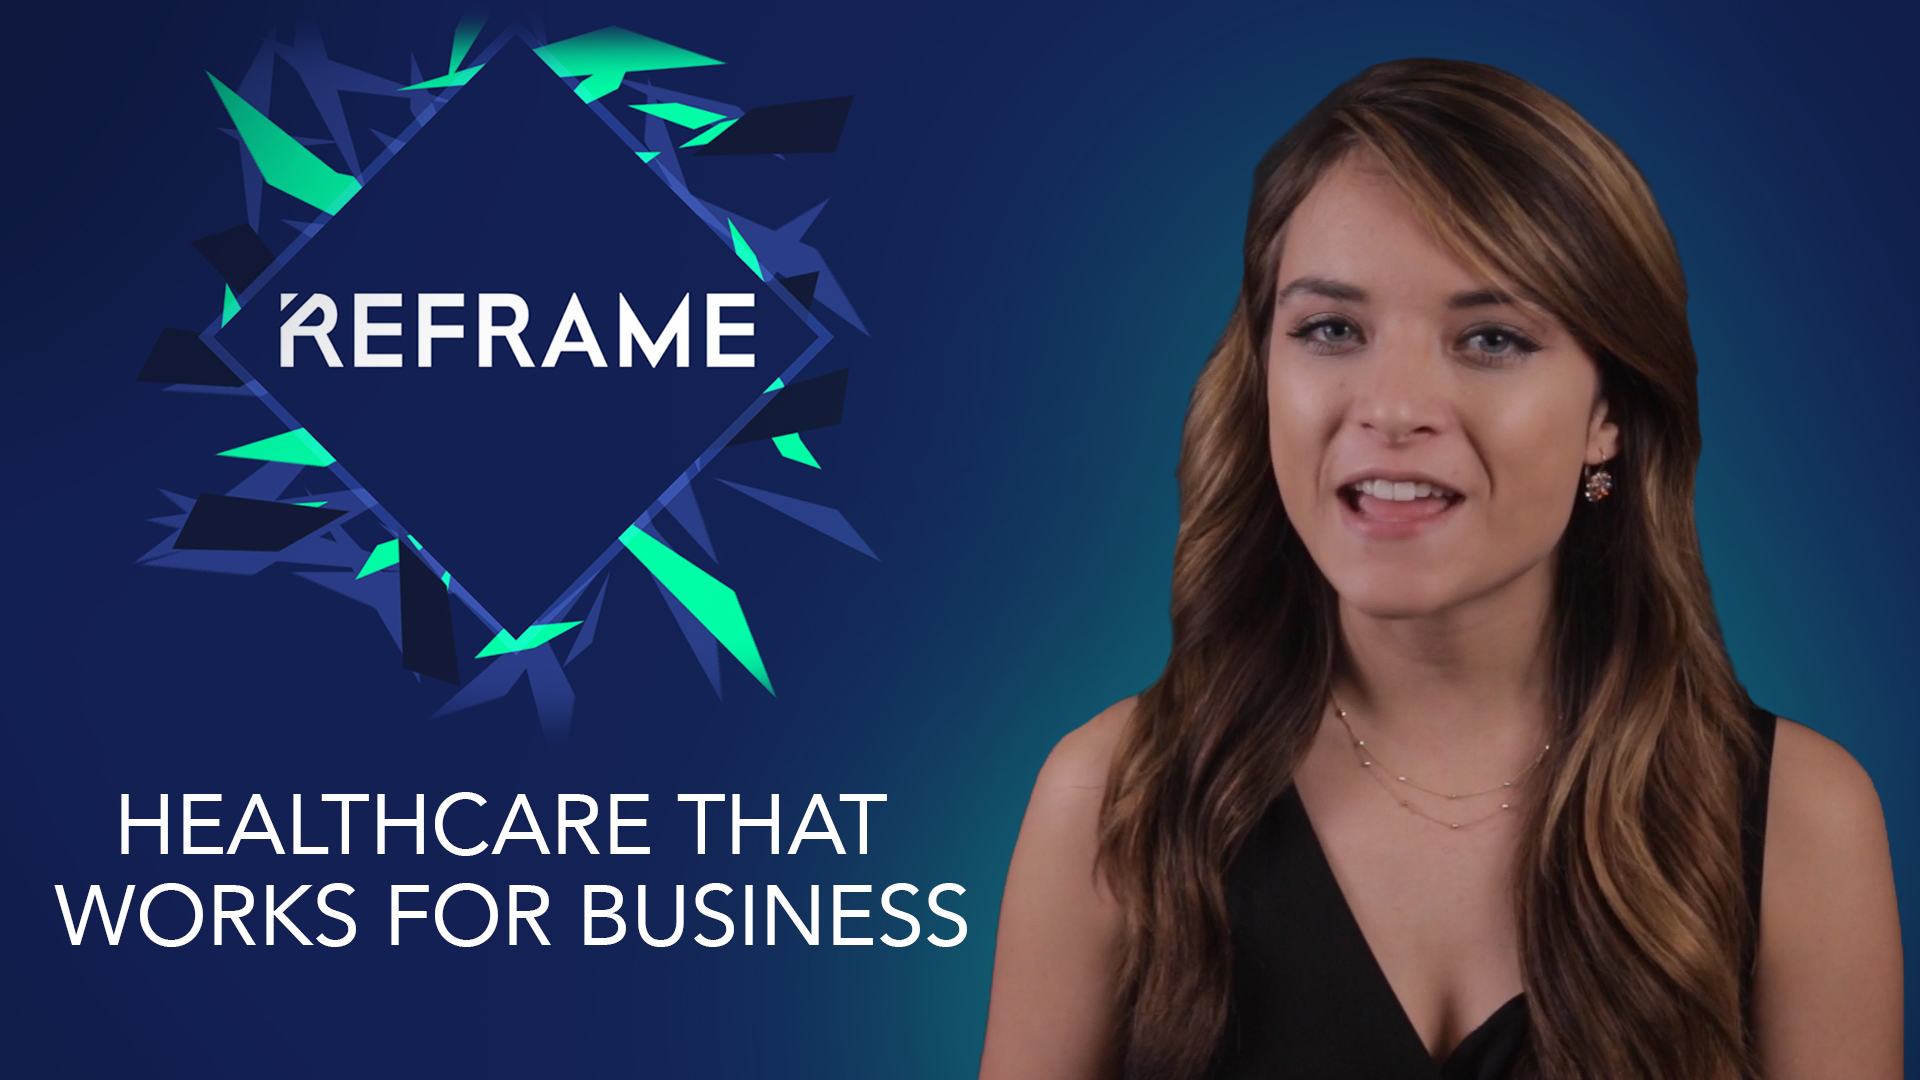 How to Provide Quality Healthcare and Keep More Capital to Grow Your Business [ The Reframe ]